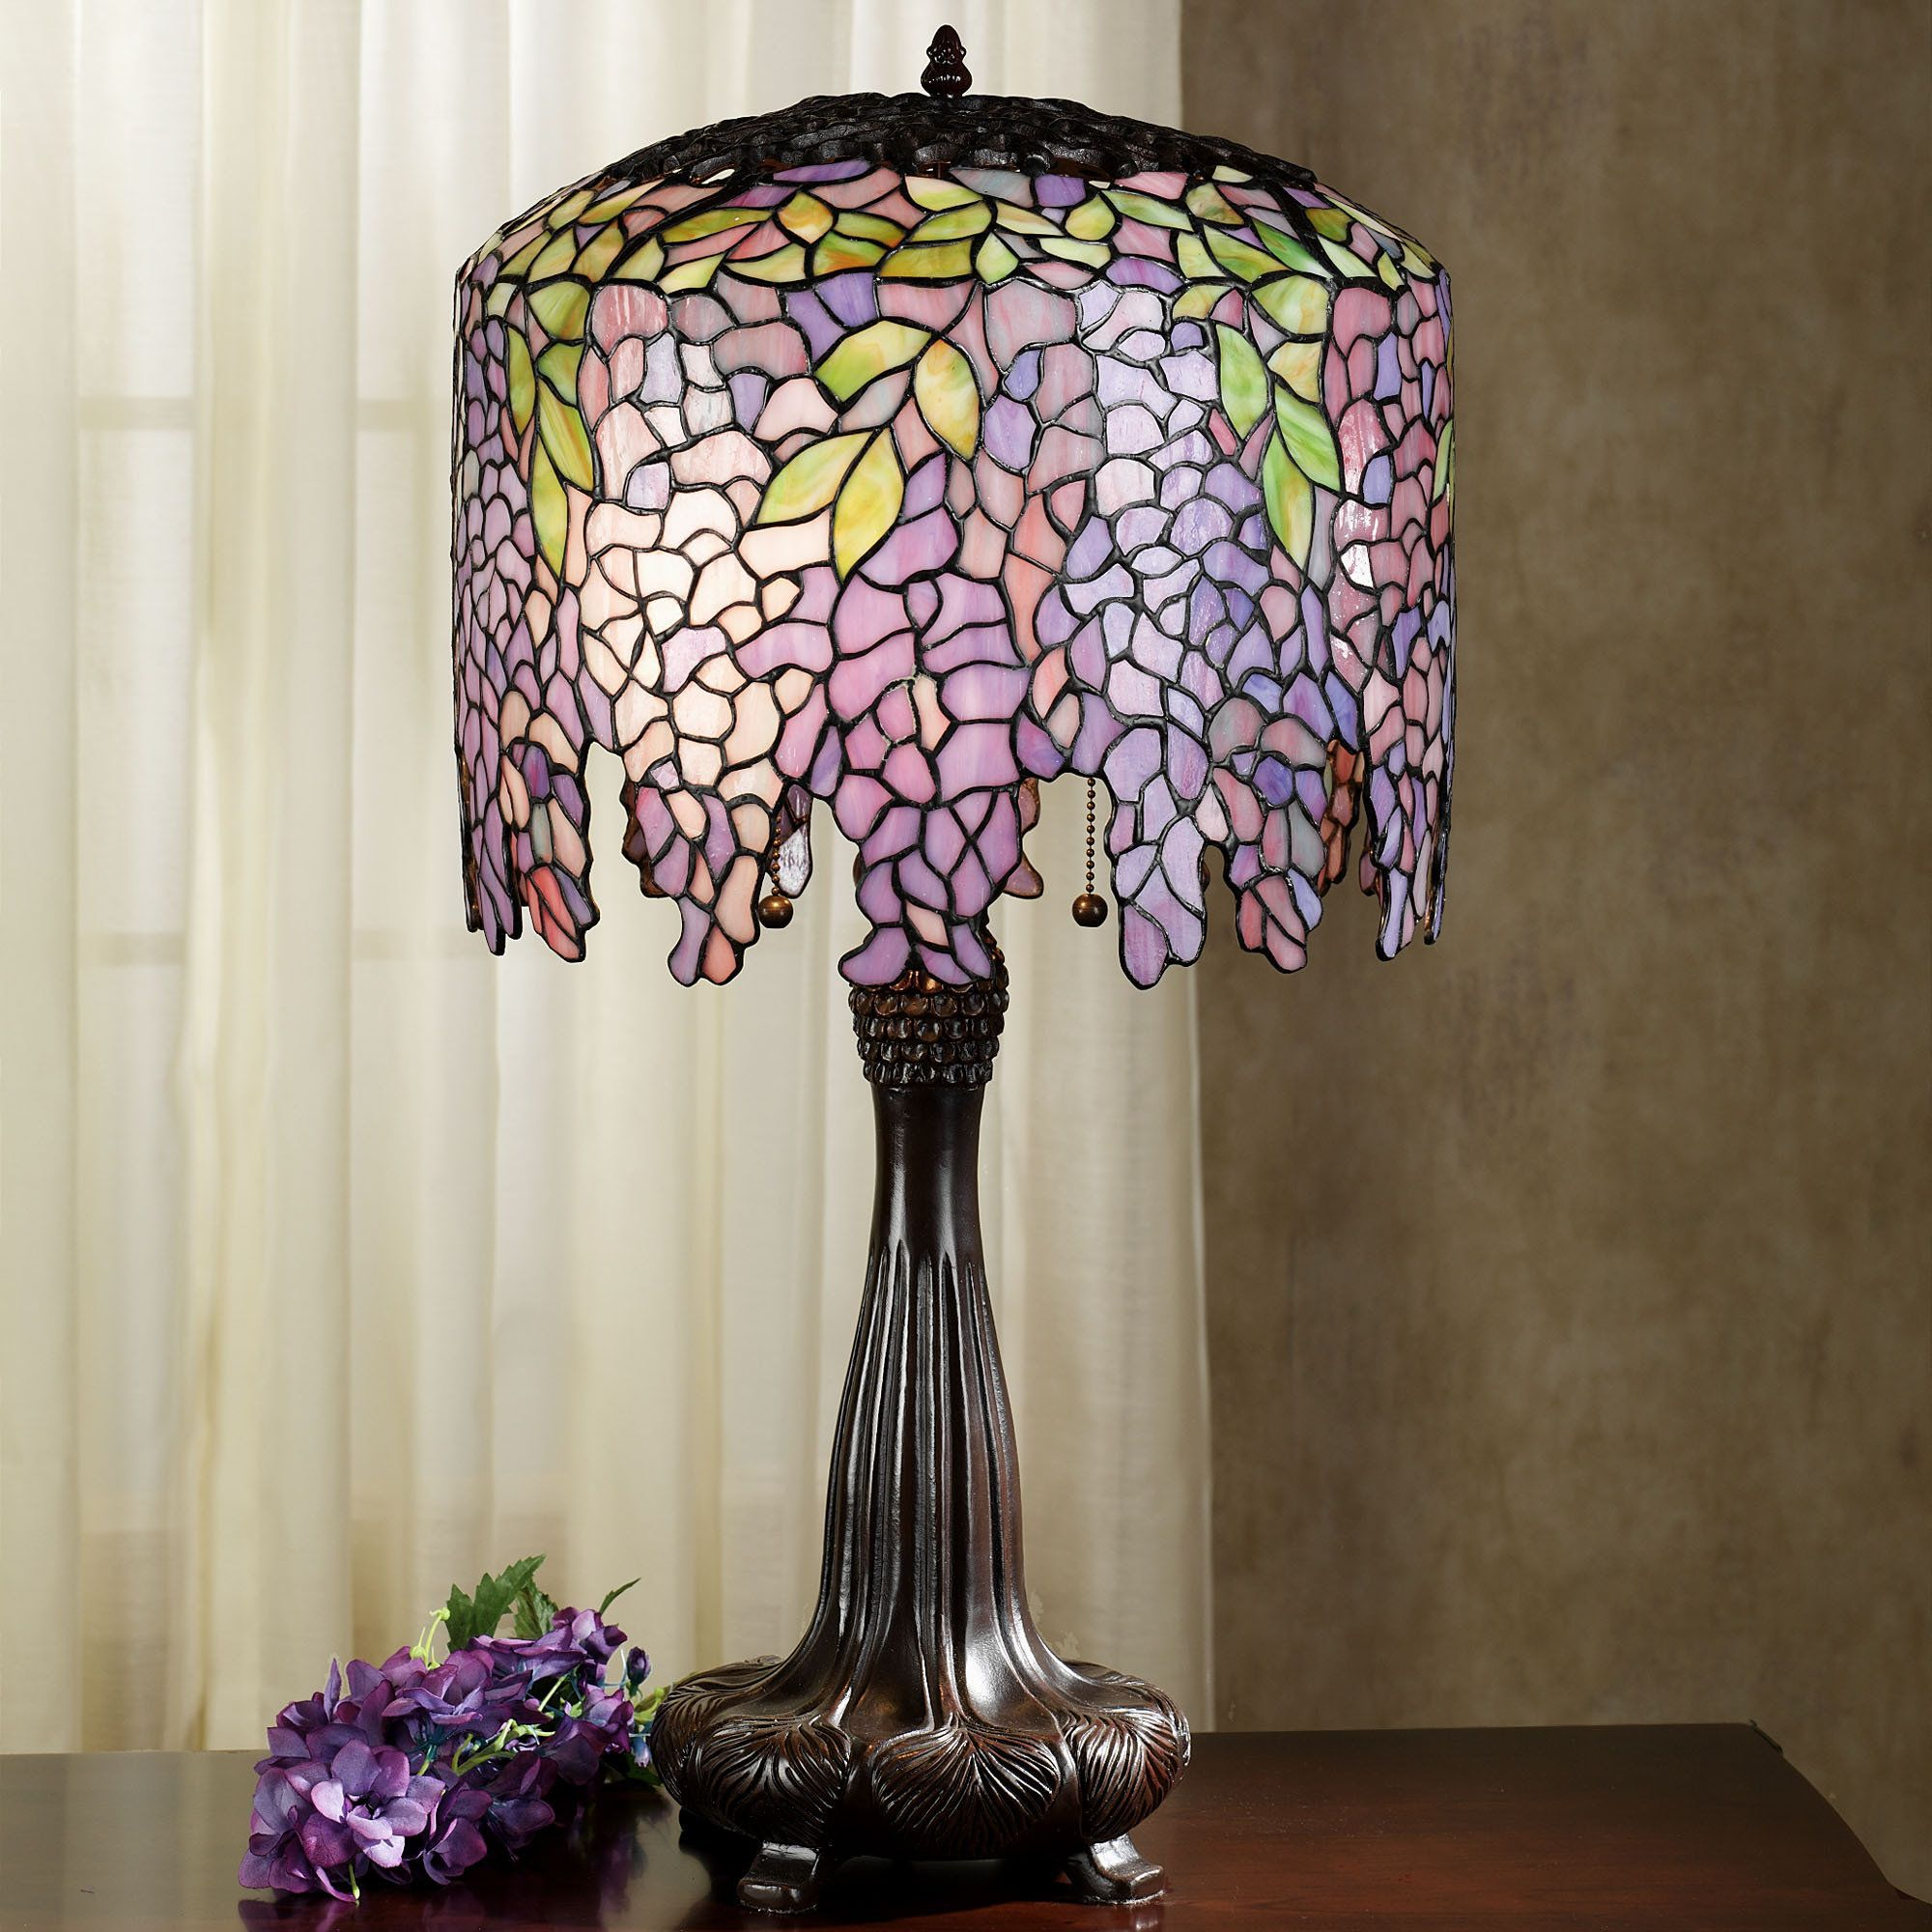 The Handcrafted Wisteria Stained Glass Table Lamp Adds A Unique Touch To Your Decor Stained Art Stained Glass Table Lamps Tiffany Lamp Shade Glass Table Lamp